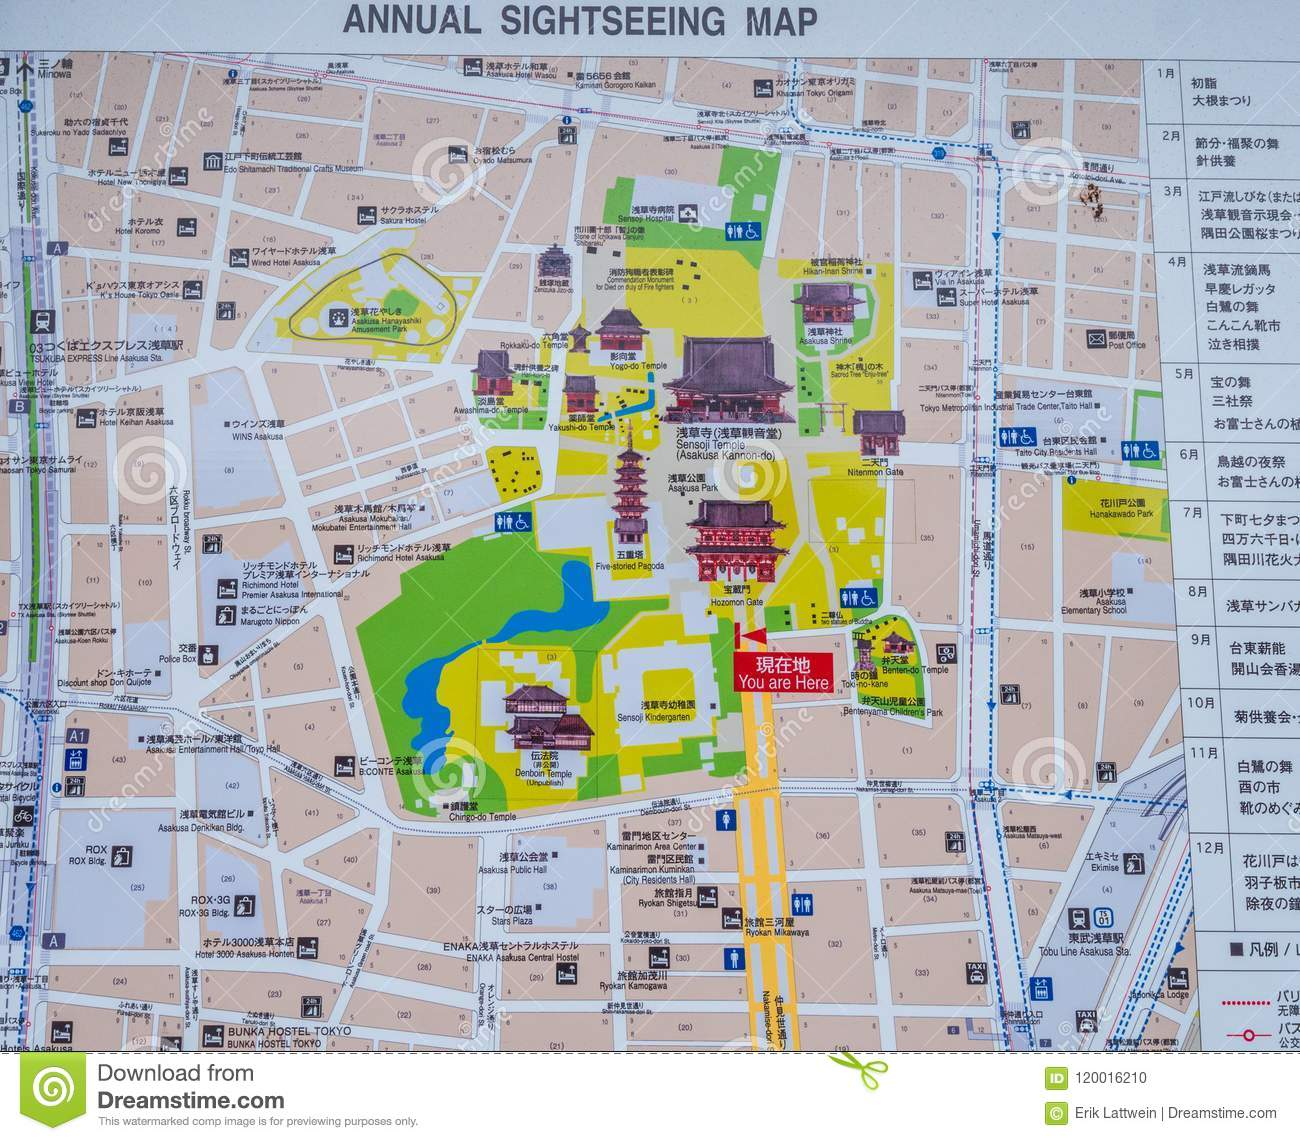 Sightseeing Map Of Asakusa In Tokyo - Annual Events - TOKYO, JAPAN ...